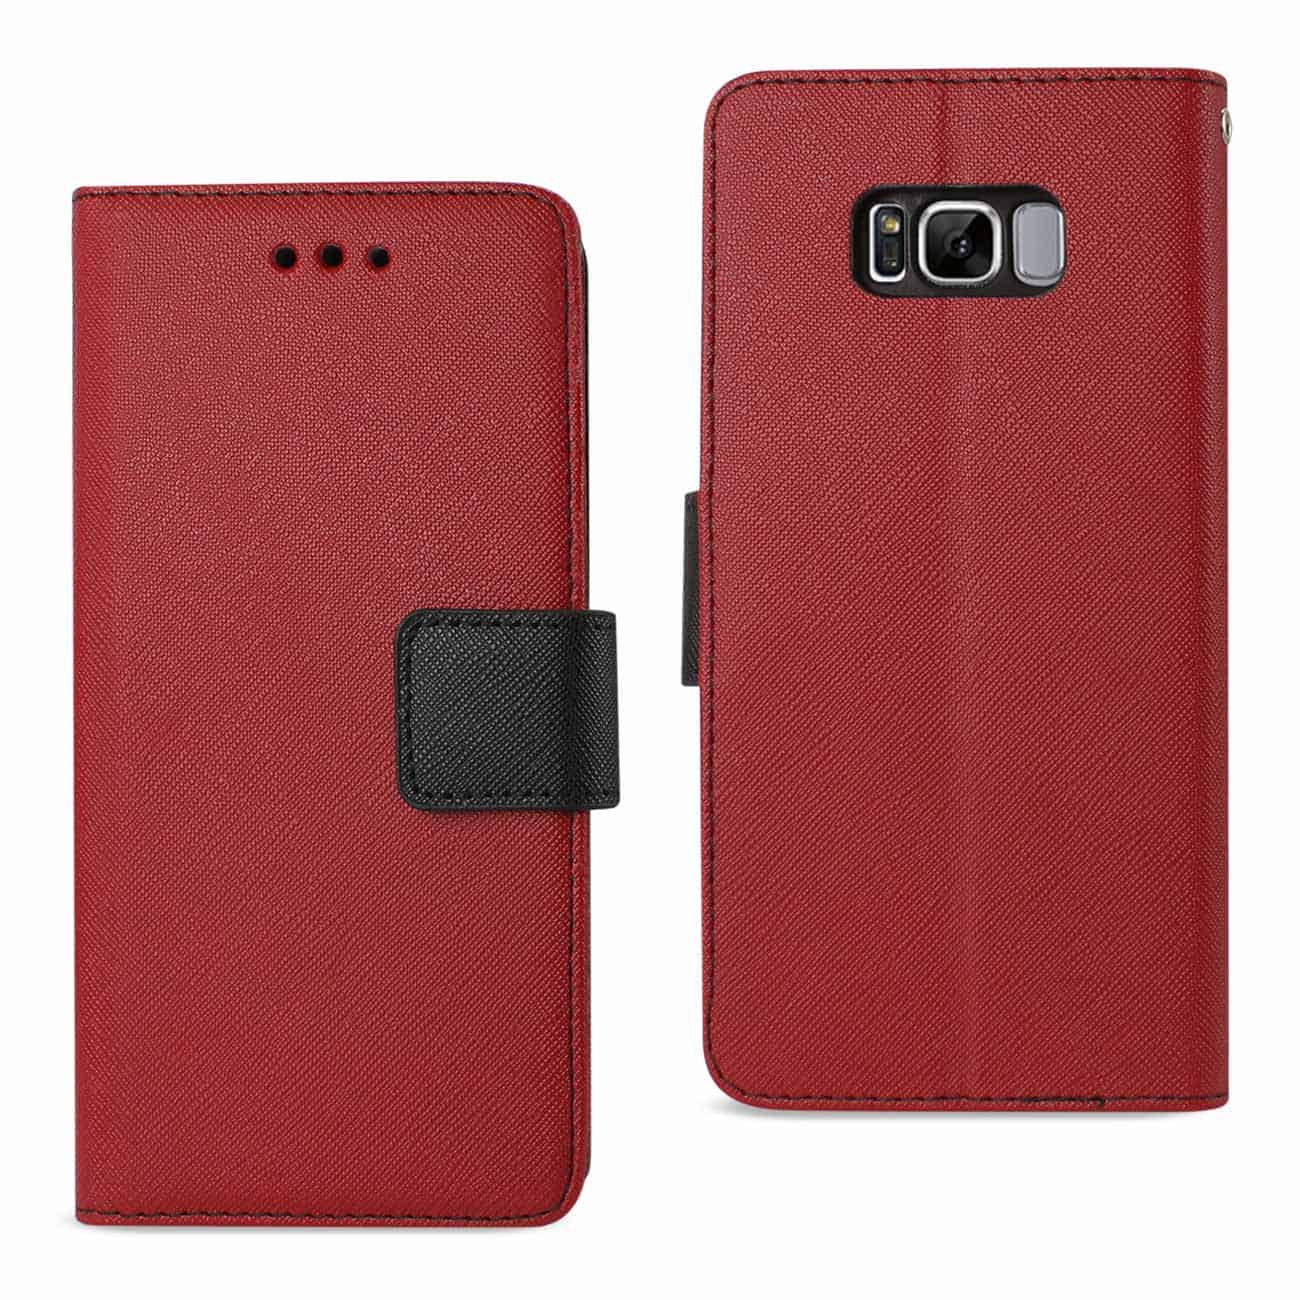 SAMSUNG GALAXY S8 3-IN-1 WALLET CASE IN RED